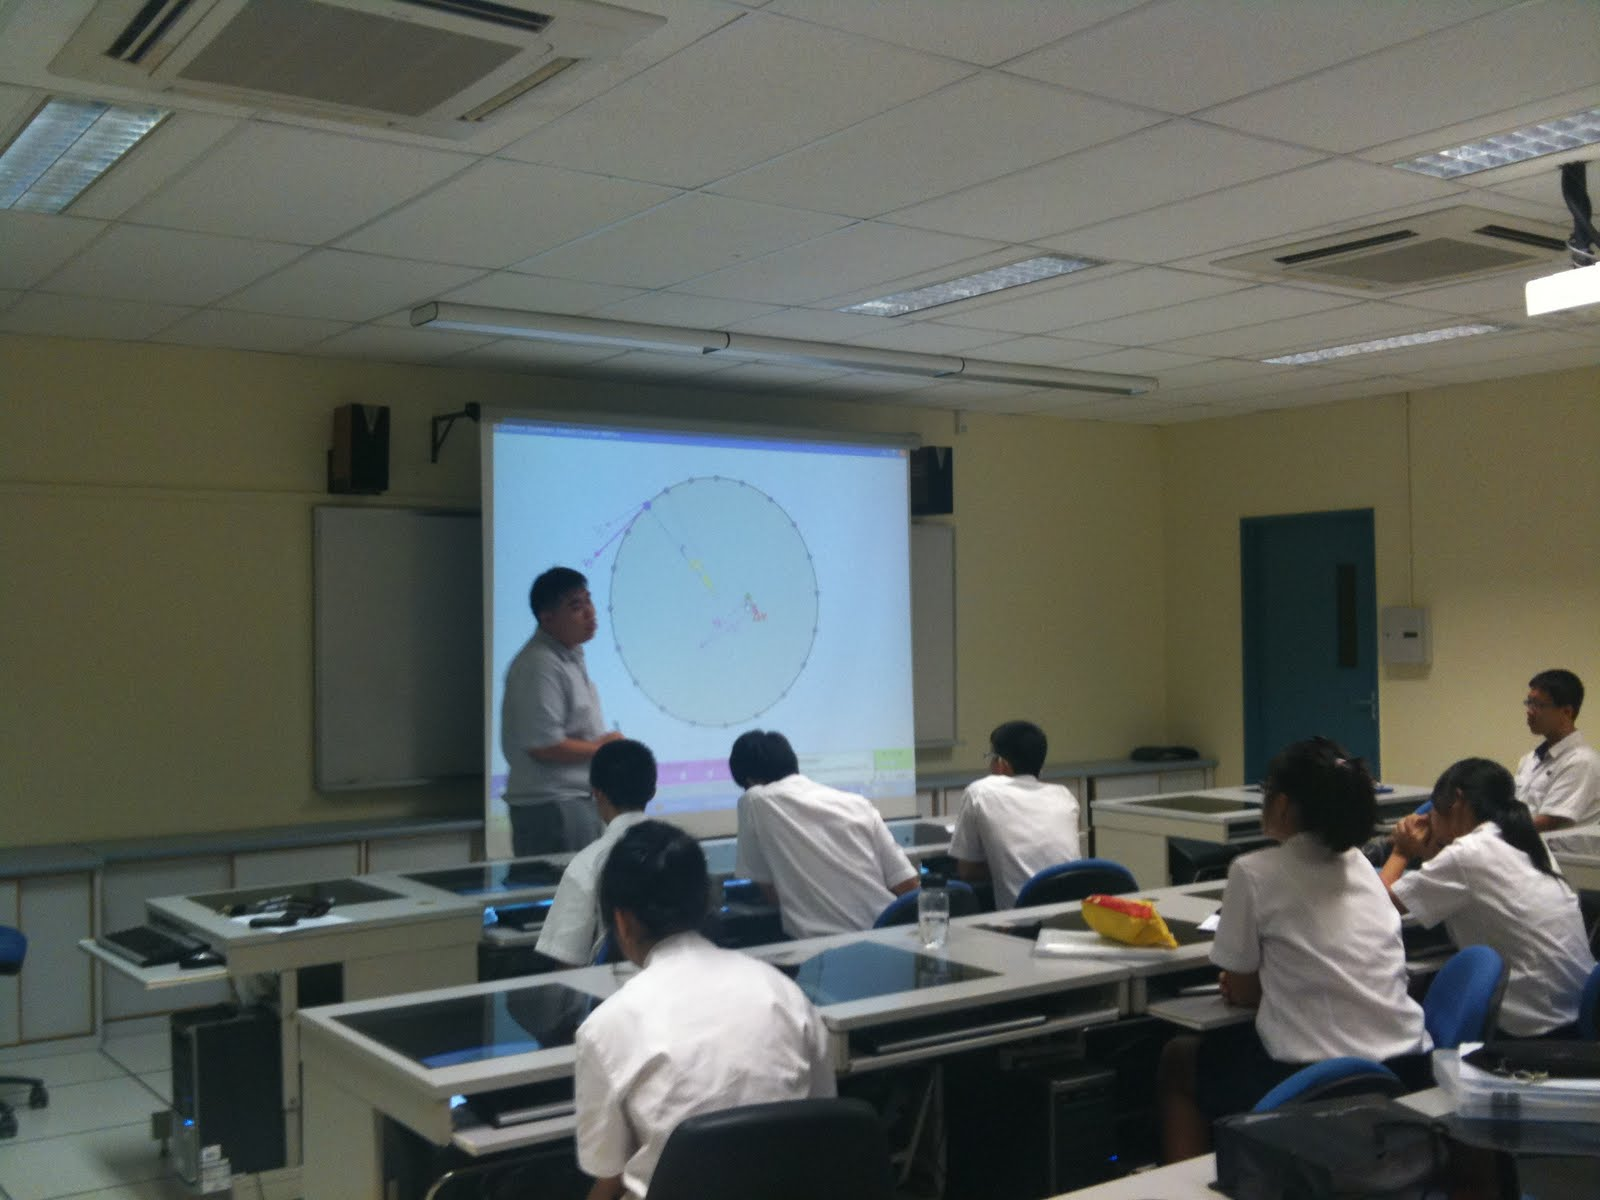 Open Source Physics Singapore Lesson On Circular Motion With Acjc Using Concept Mapping July